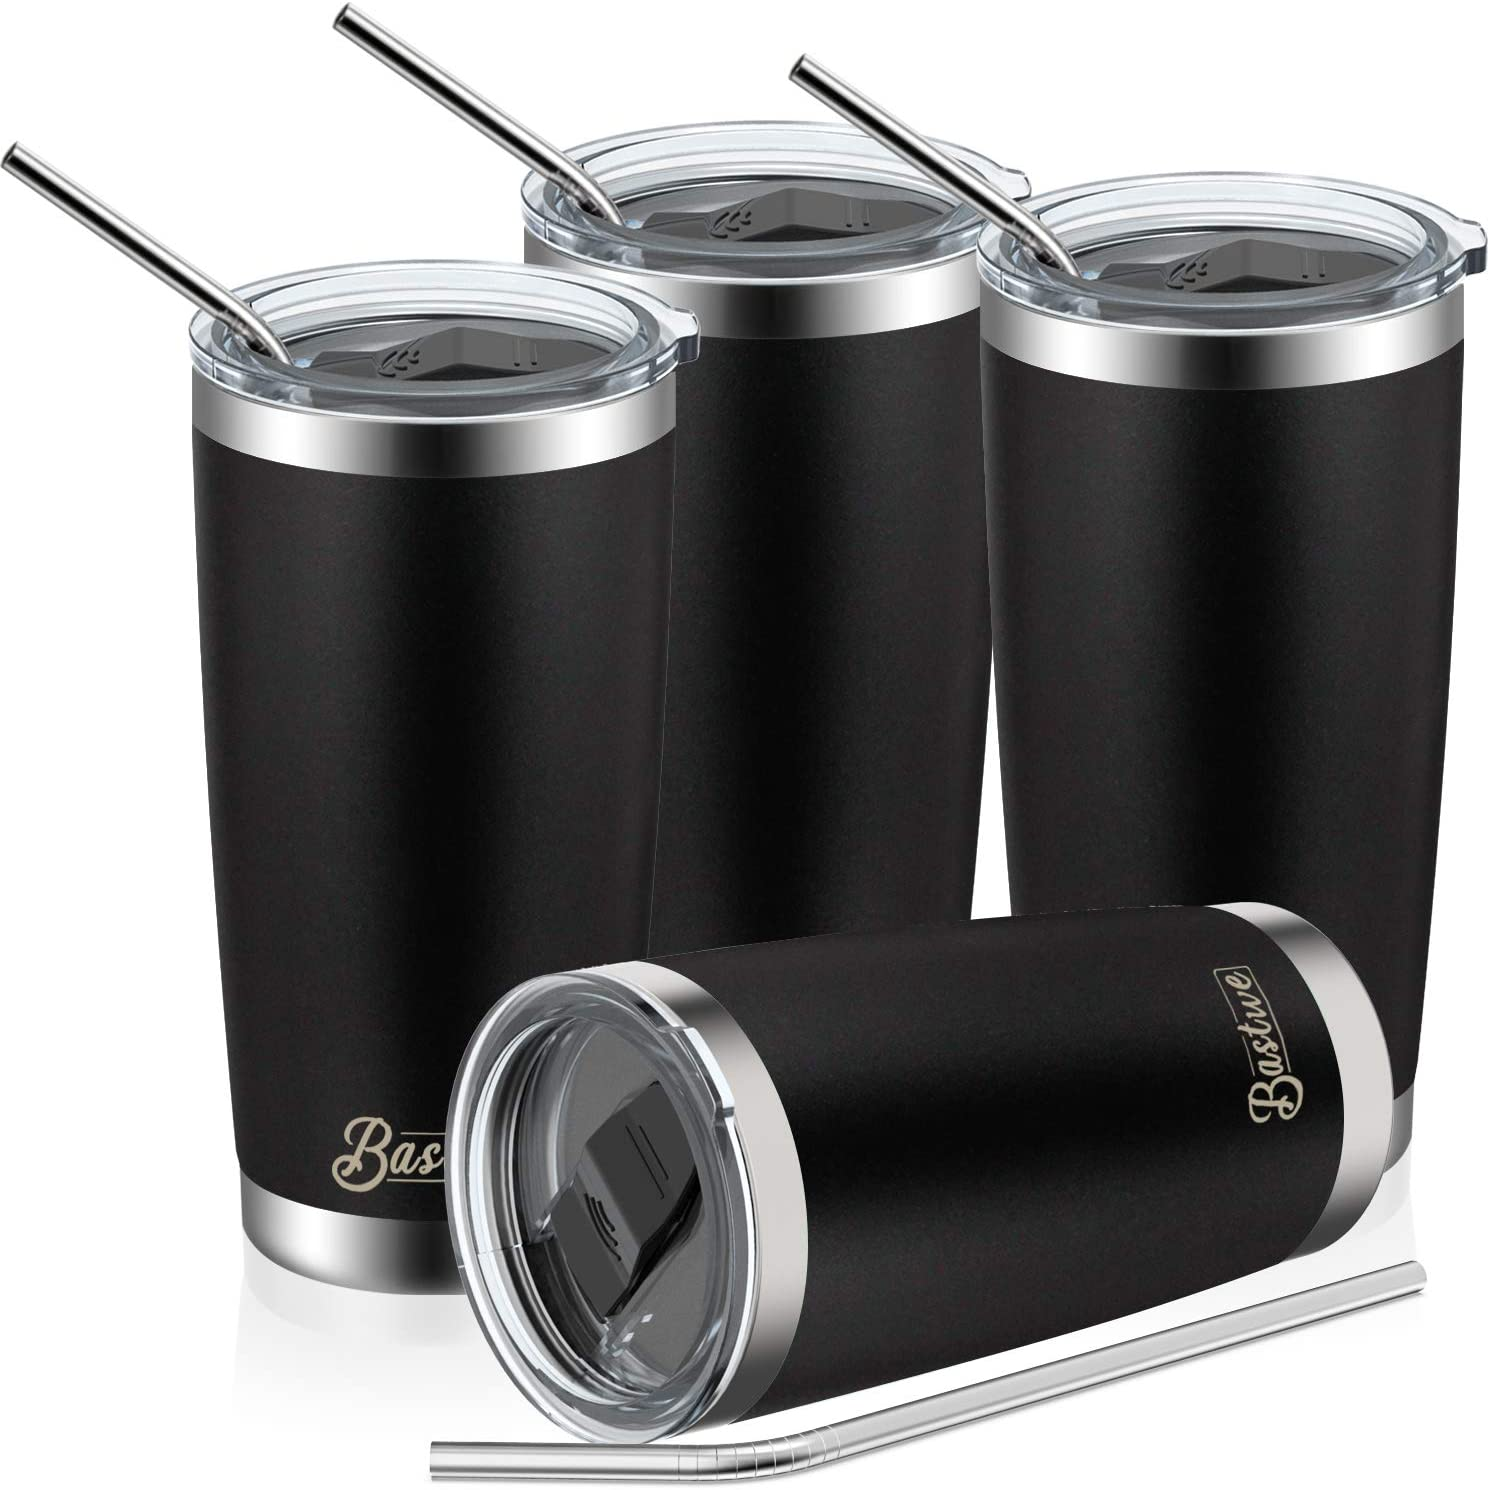 4 Pack 20oz Vacuum Insulated Tumblers, Bastwe Double Wall Stainless Steel Travel Mug with Lid and Straw for Home, Office, School, Works Great for Ice Drink, Hot Beverage (Black)